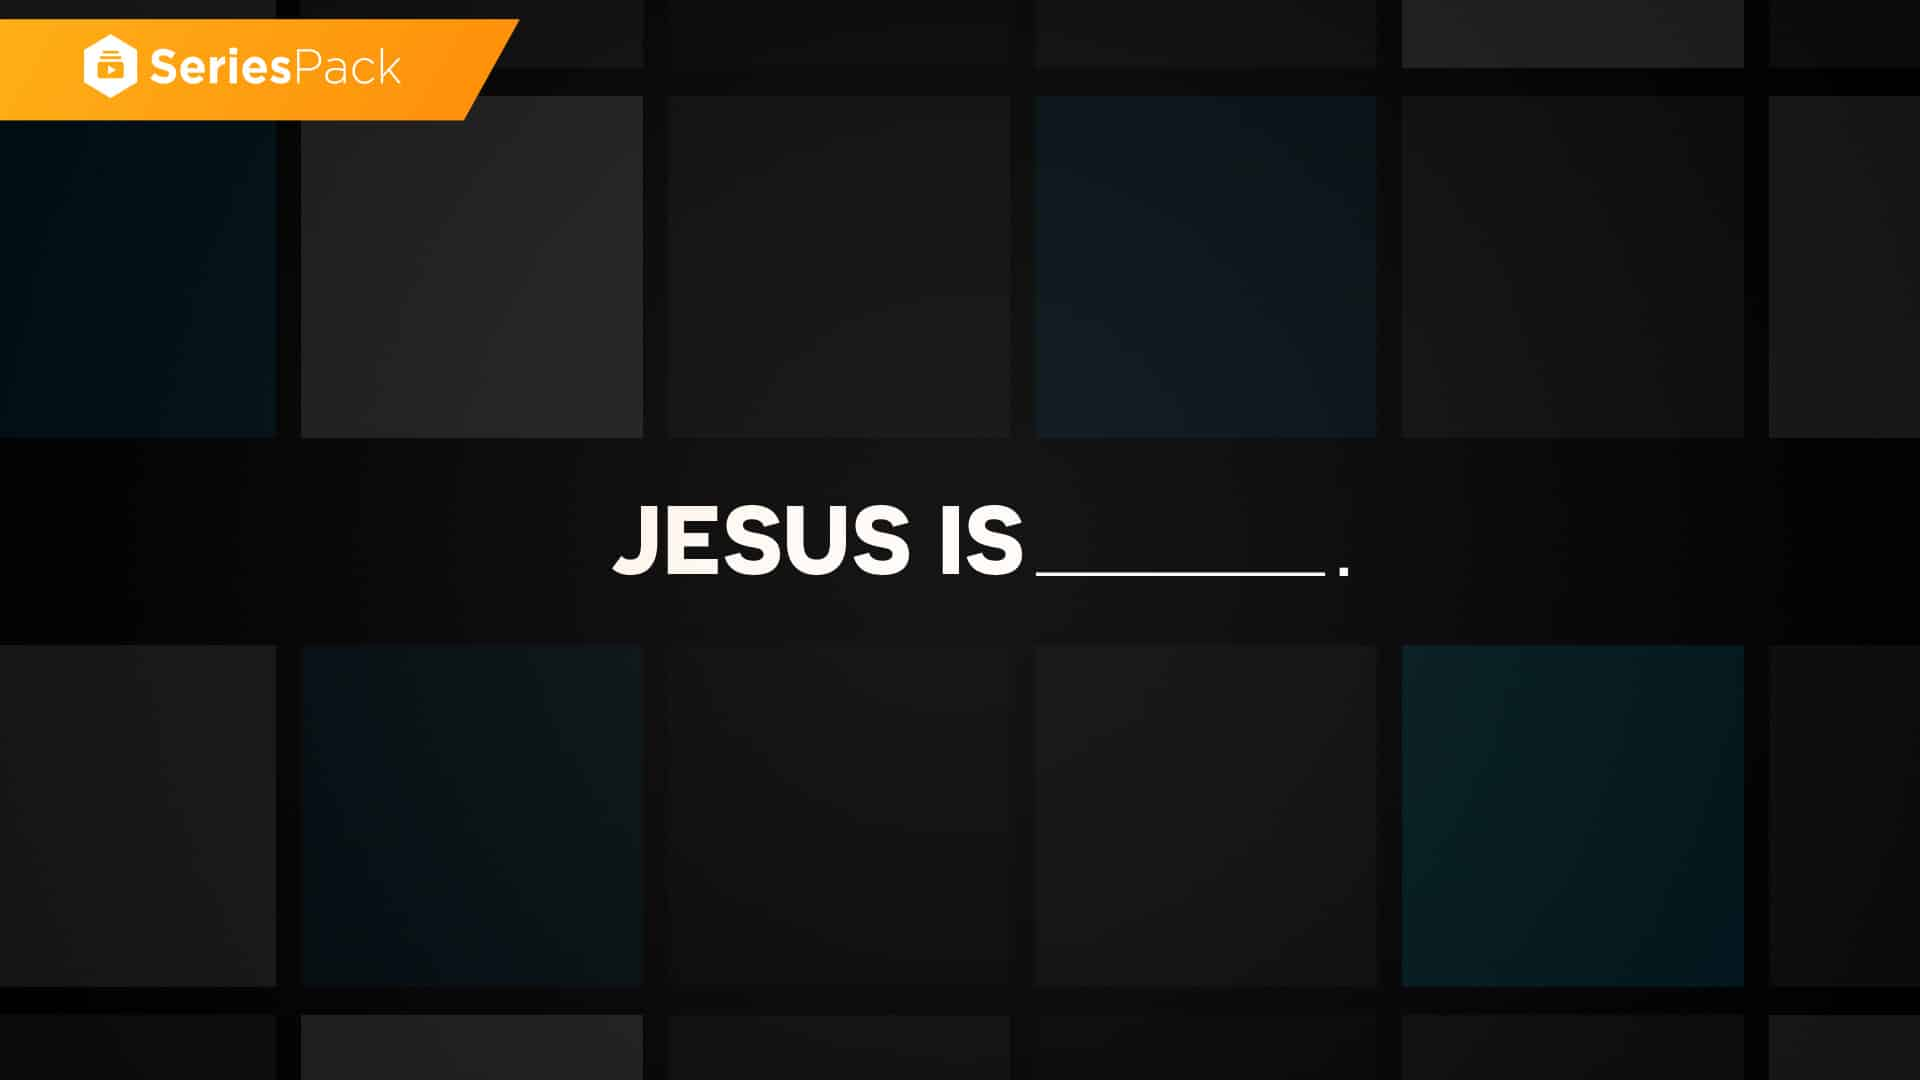 Church, Media, Sermon Series, Motions, Backgrounds, Social Media, Graphics, Resources